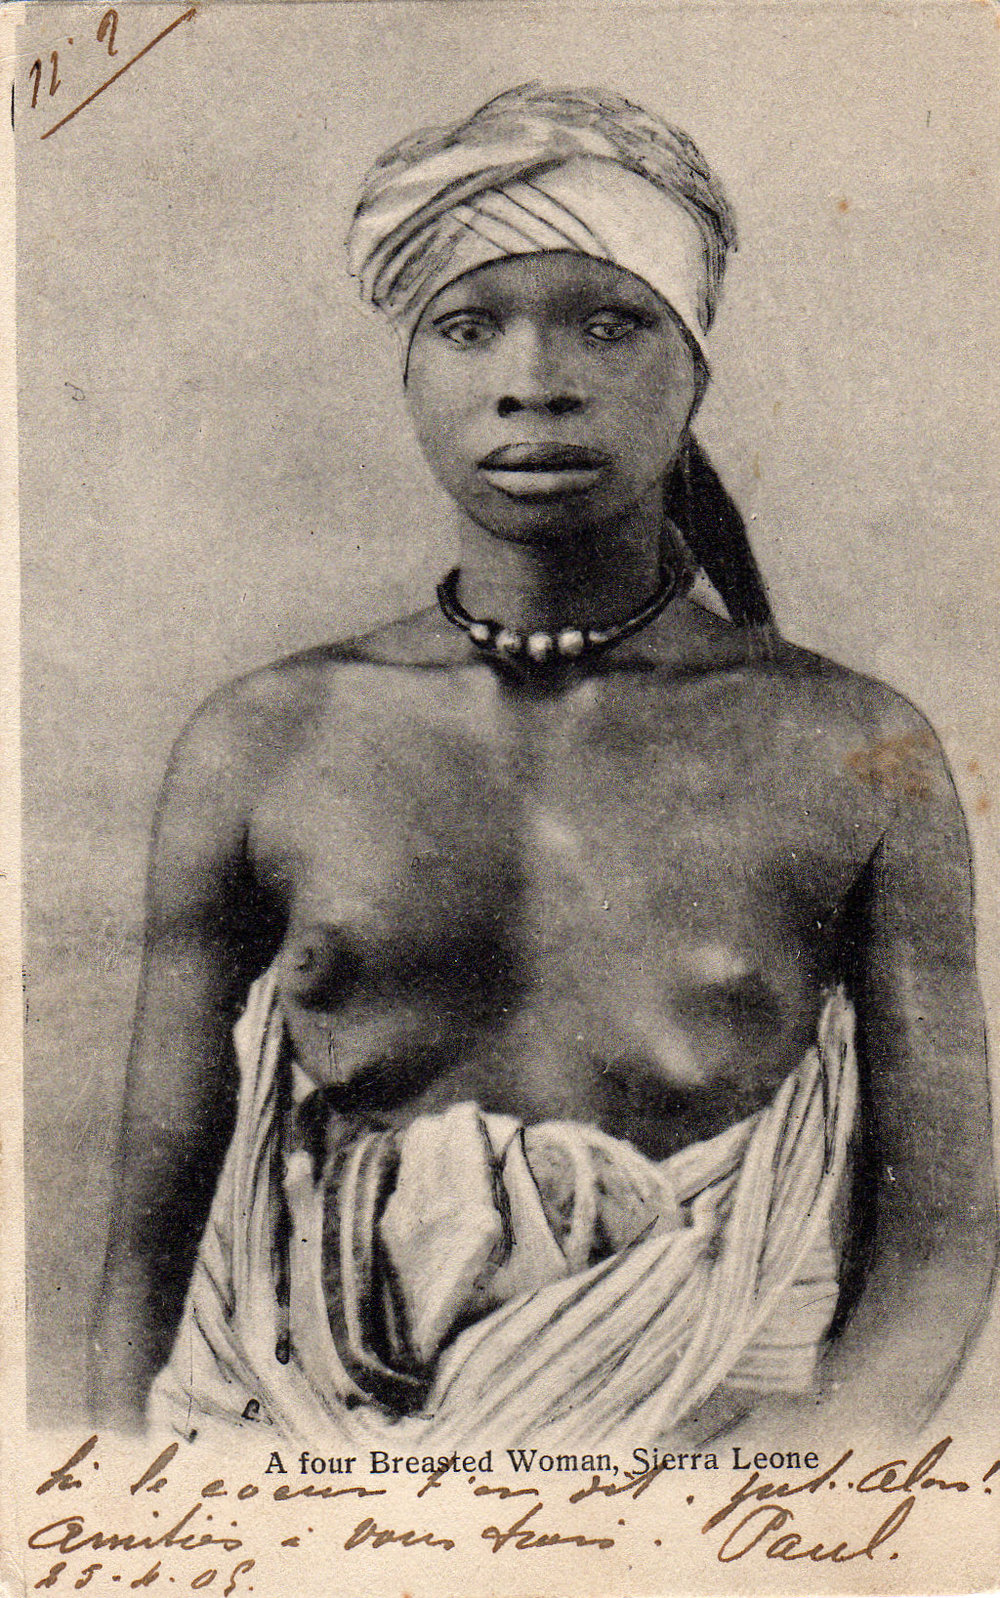 A four-breasted woman, Sierra Leone, 1909.